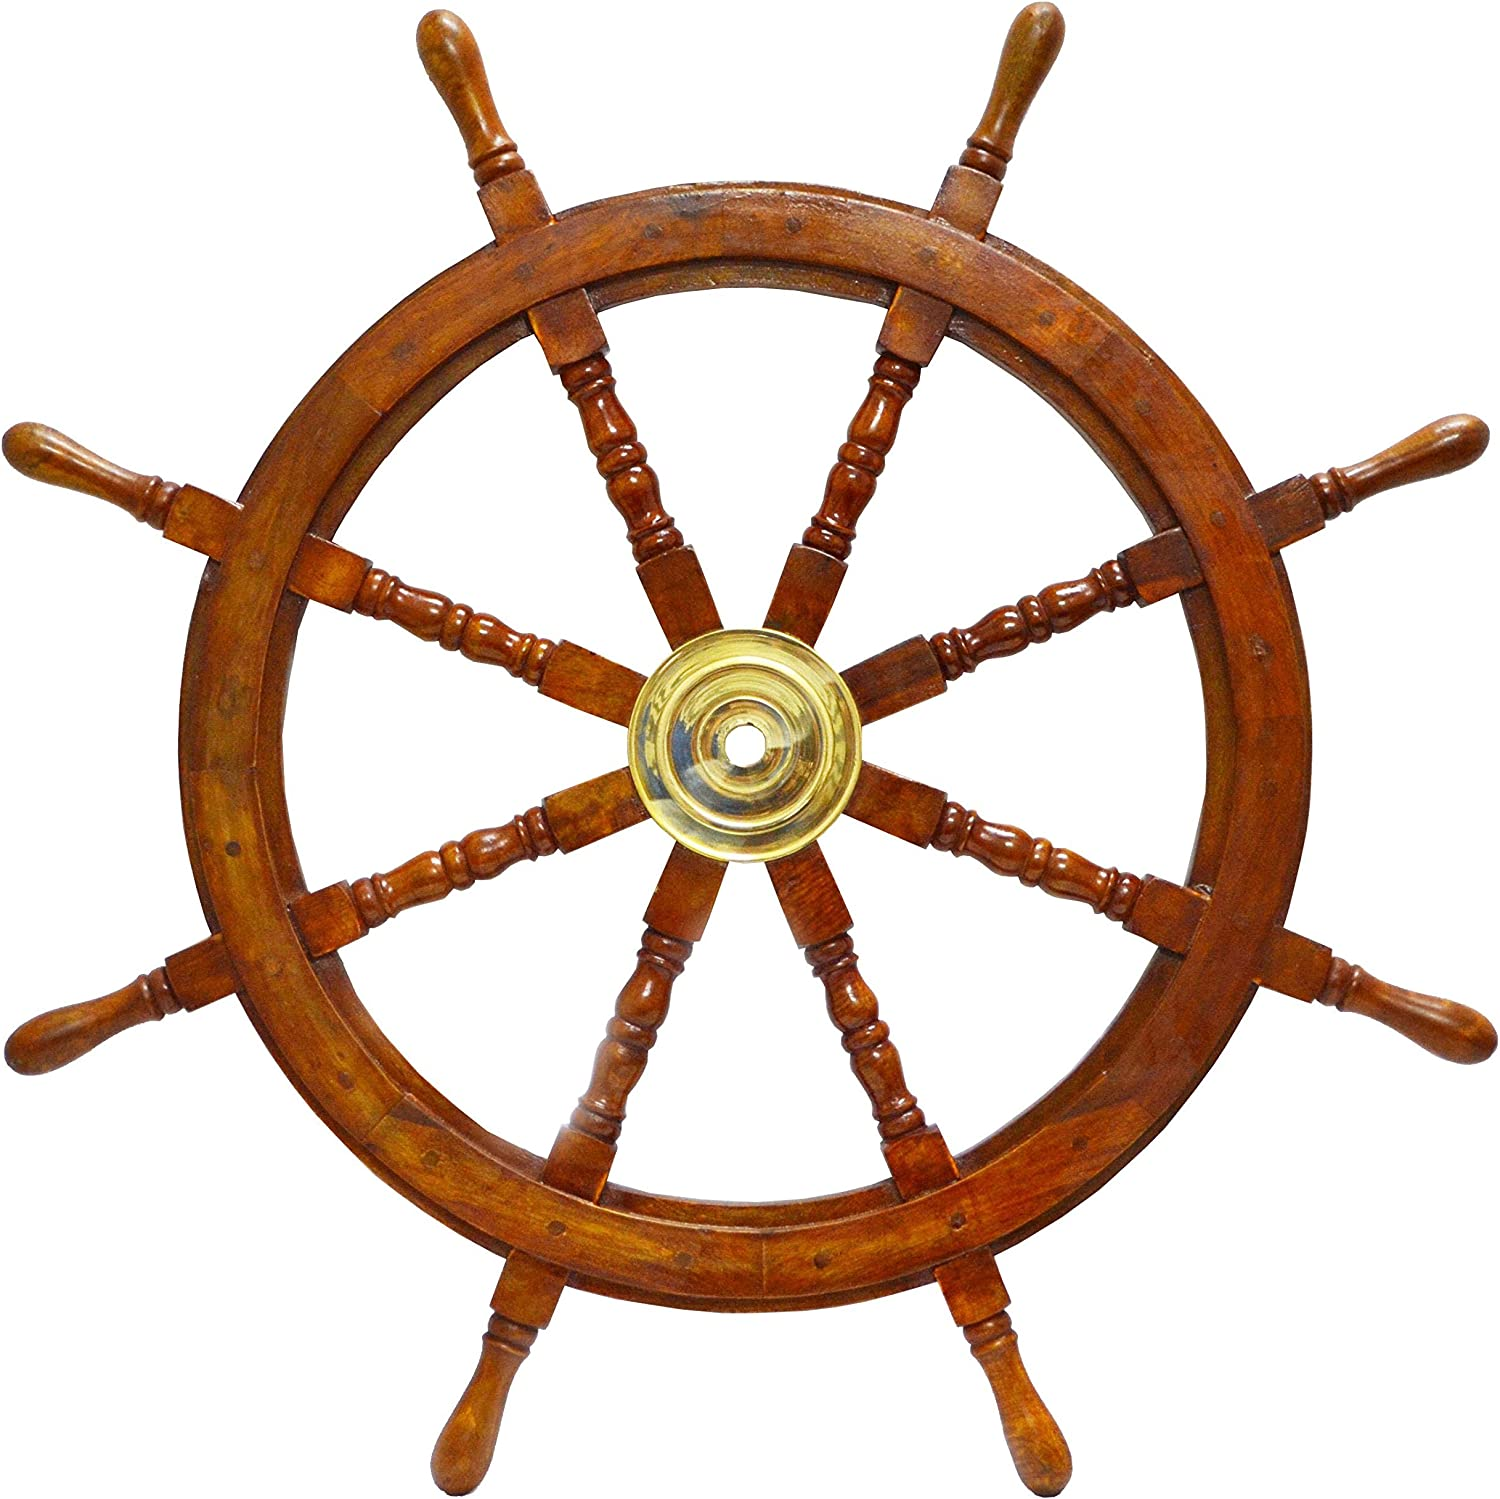 Amazon Com Ship Wheel Ships Steering Wheel Boat Wheel Pirate Ship Wheel Captains Wheel Nautical Decor Wooden Ship Wheel 36 Inch Dia Kitchen Dining